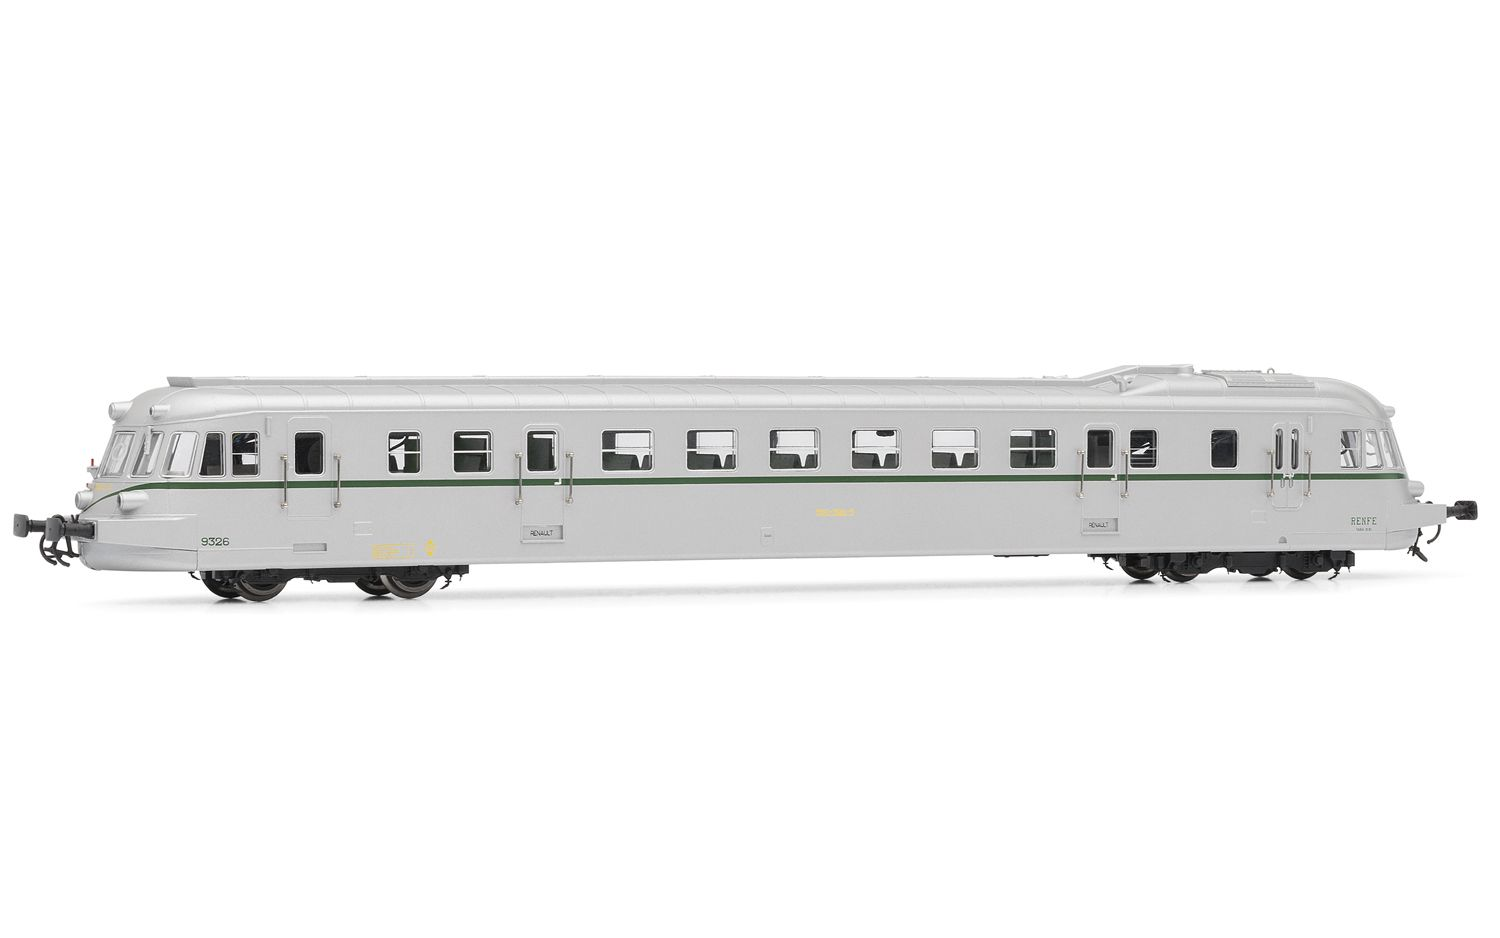 Picture Gallery for Electrotren E2144 Diesel railcar ABJ 7 RENFE 9326 cafe